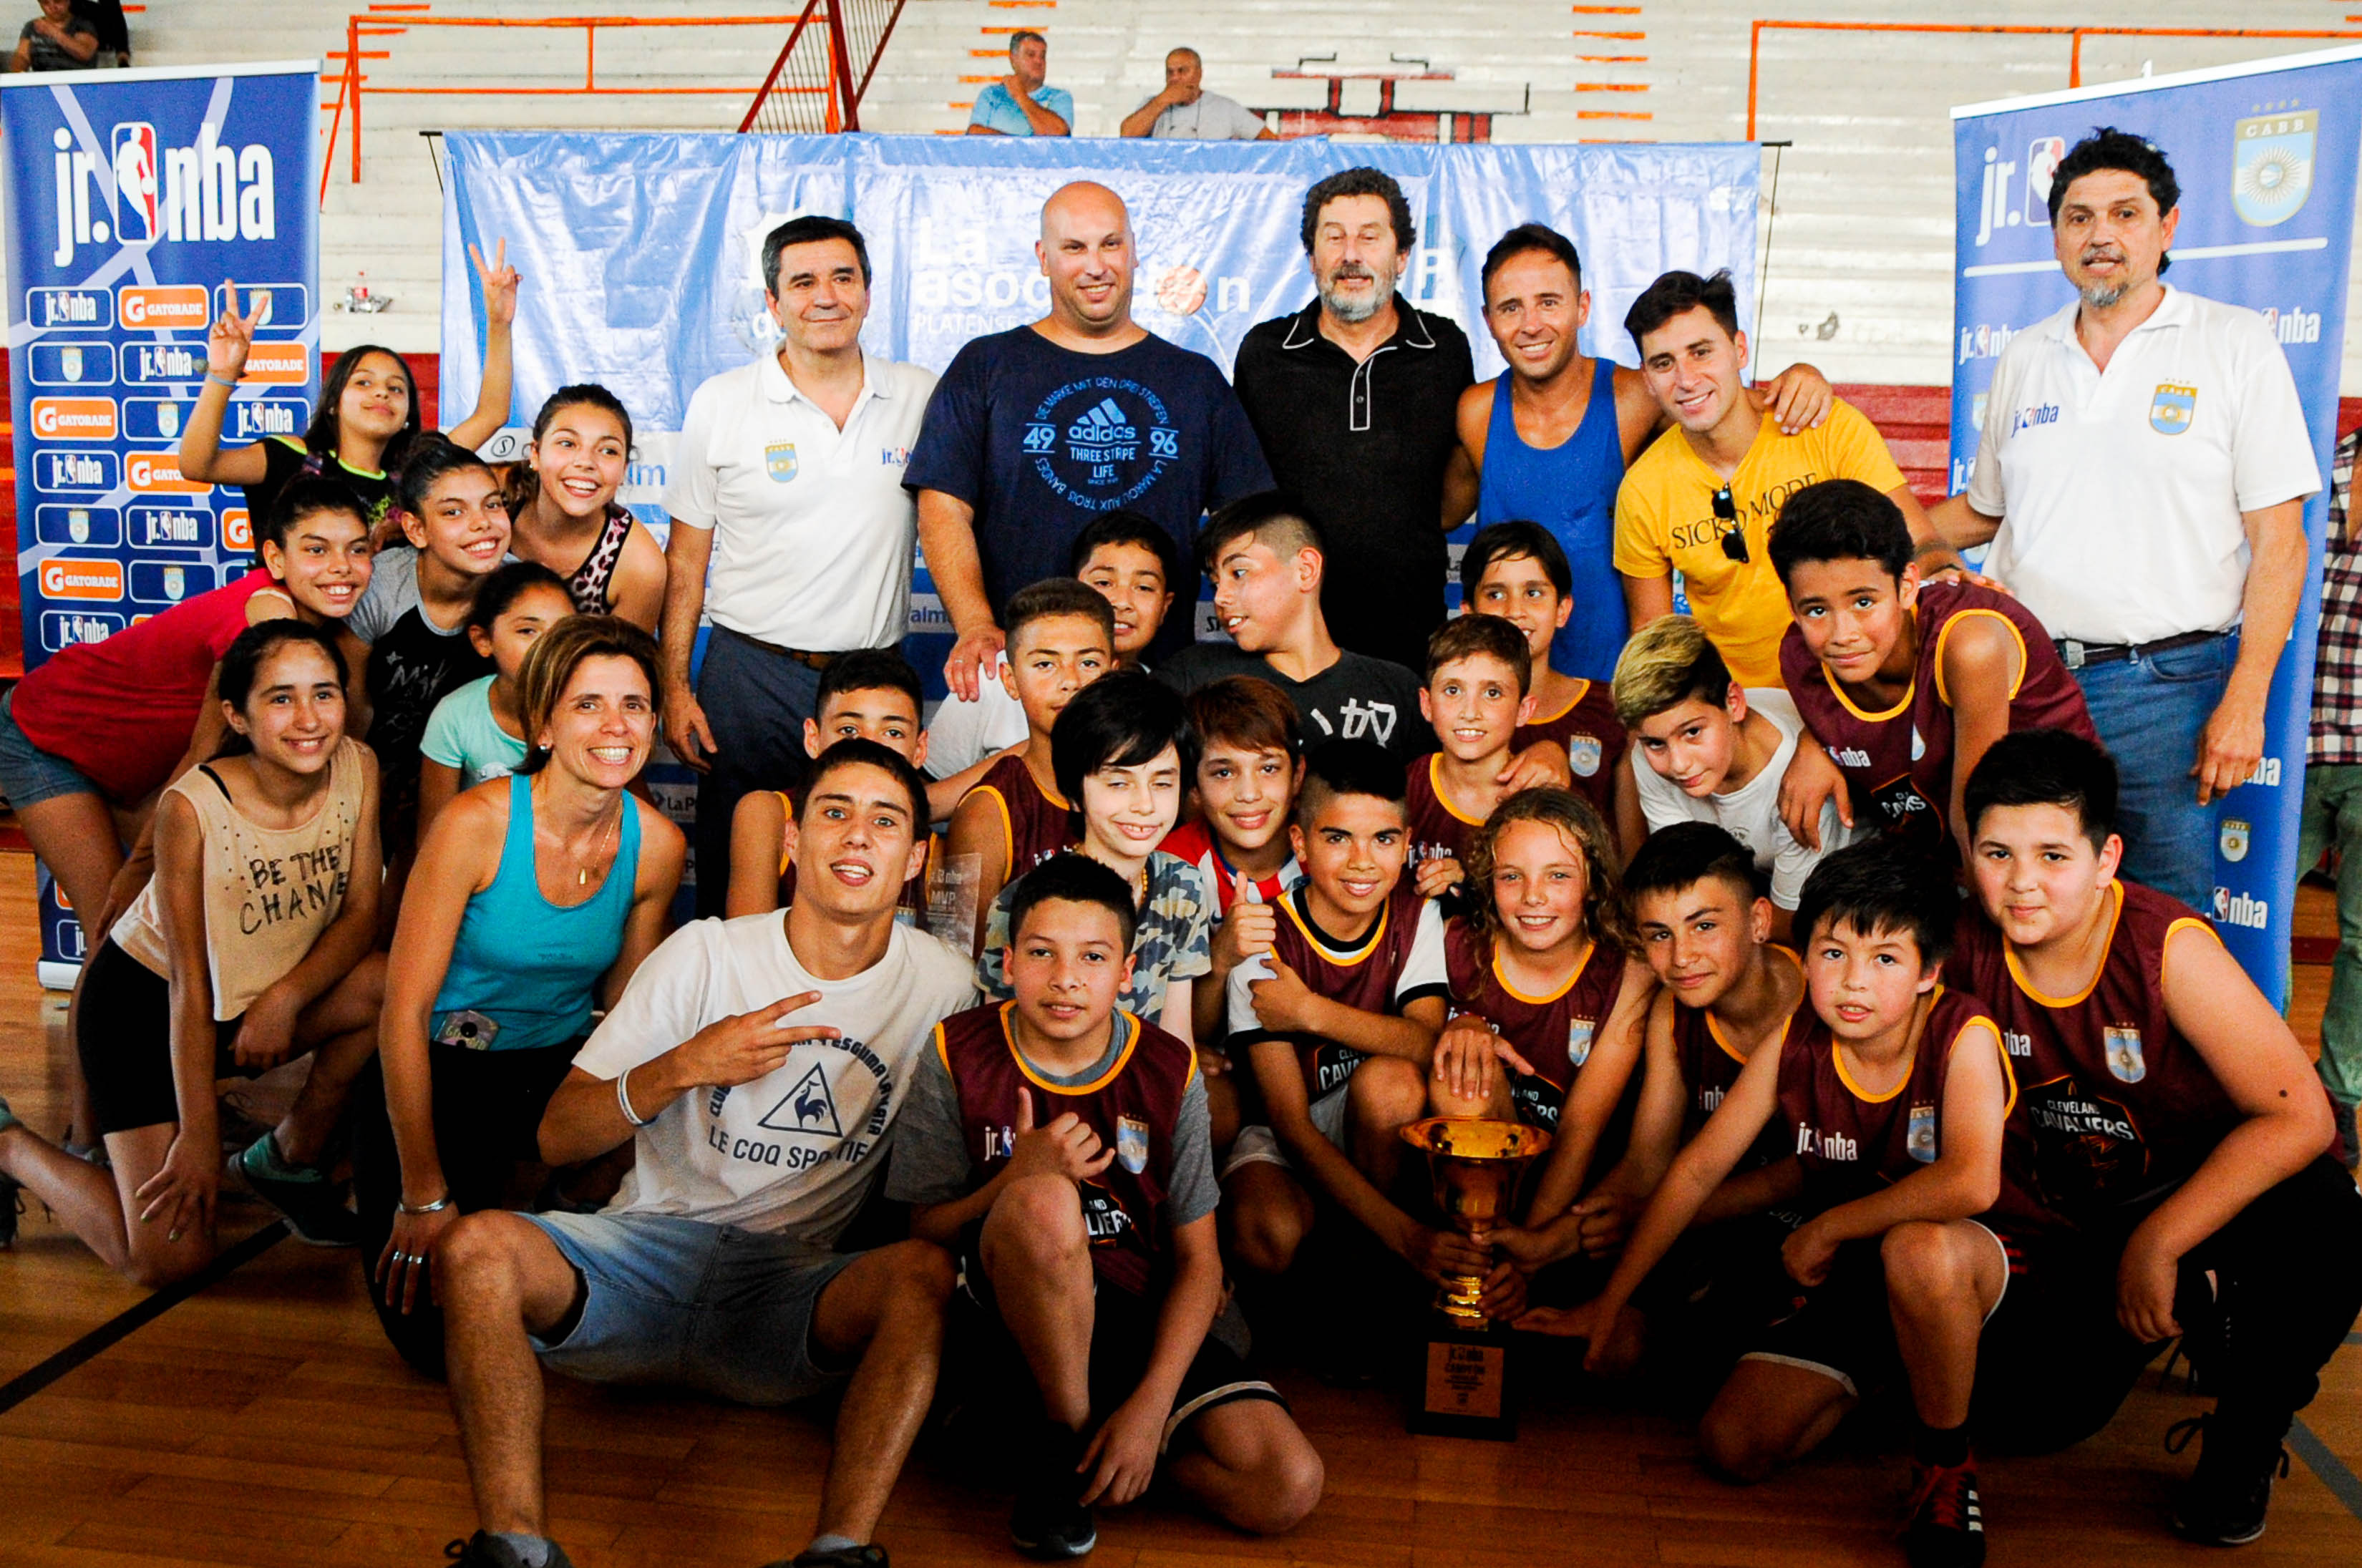 Fiesta final del Jr NBA en La Plata